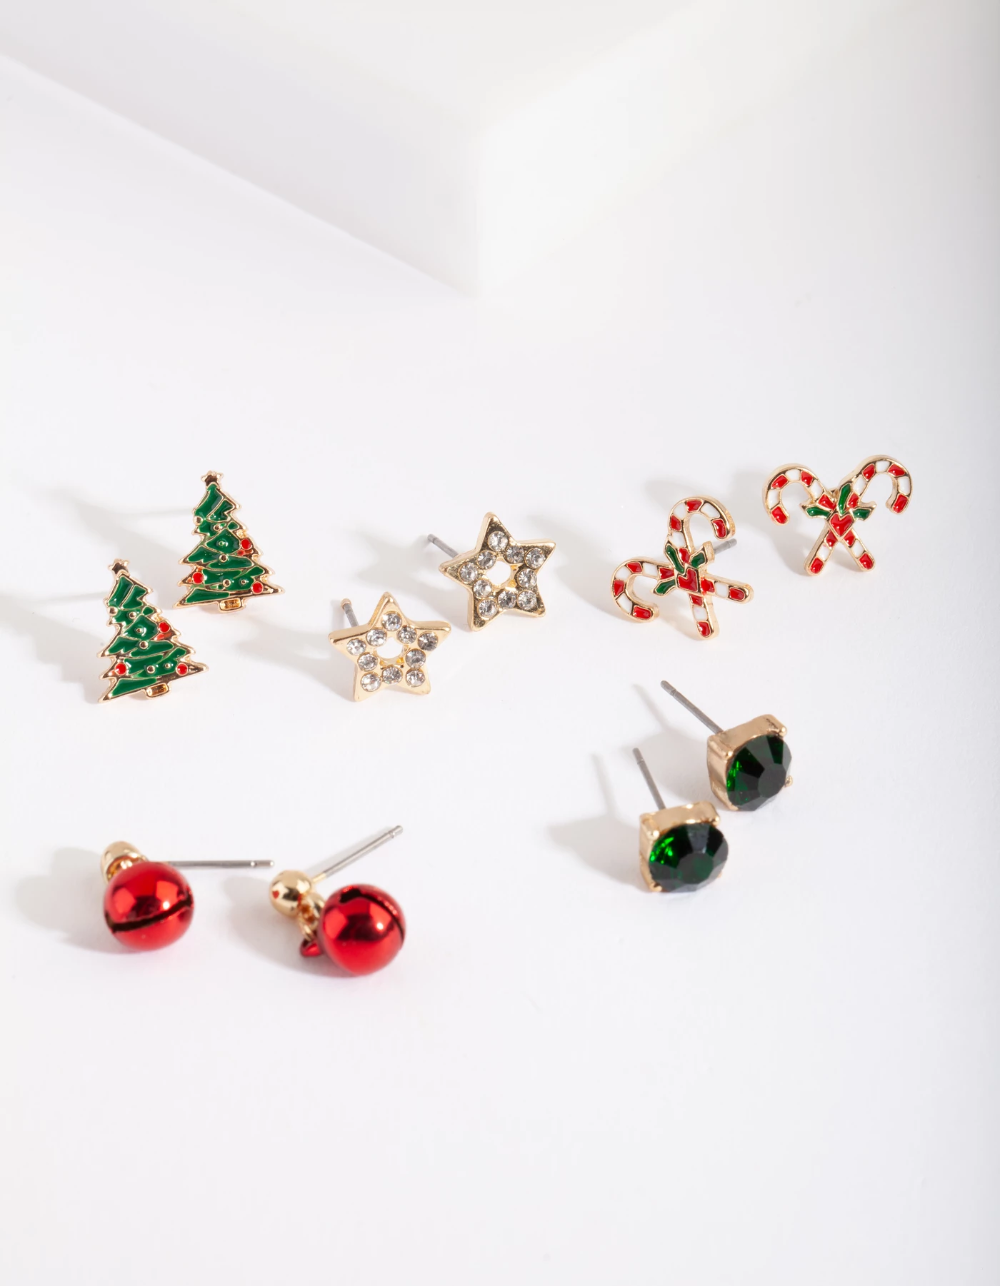 Gold Christmas Tree Stud Earring 5 Pack Stud Earrings Christmas Jewelry Lovisa Jewellery